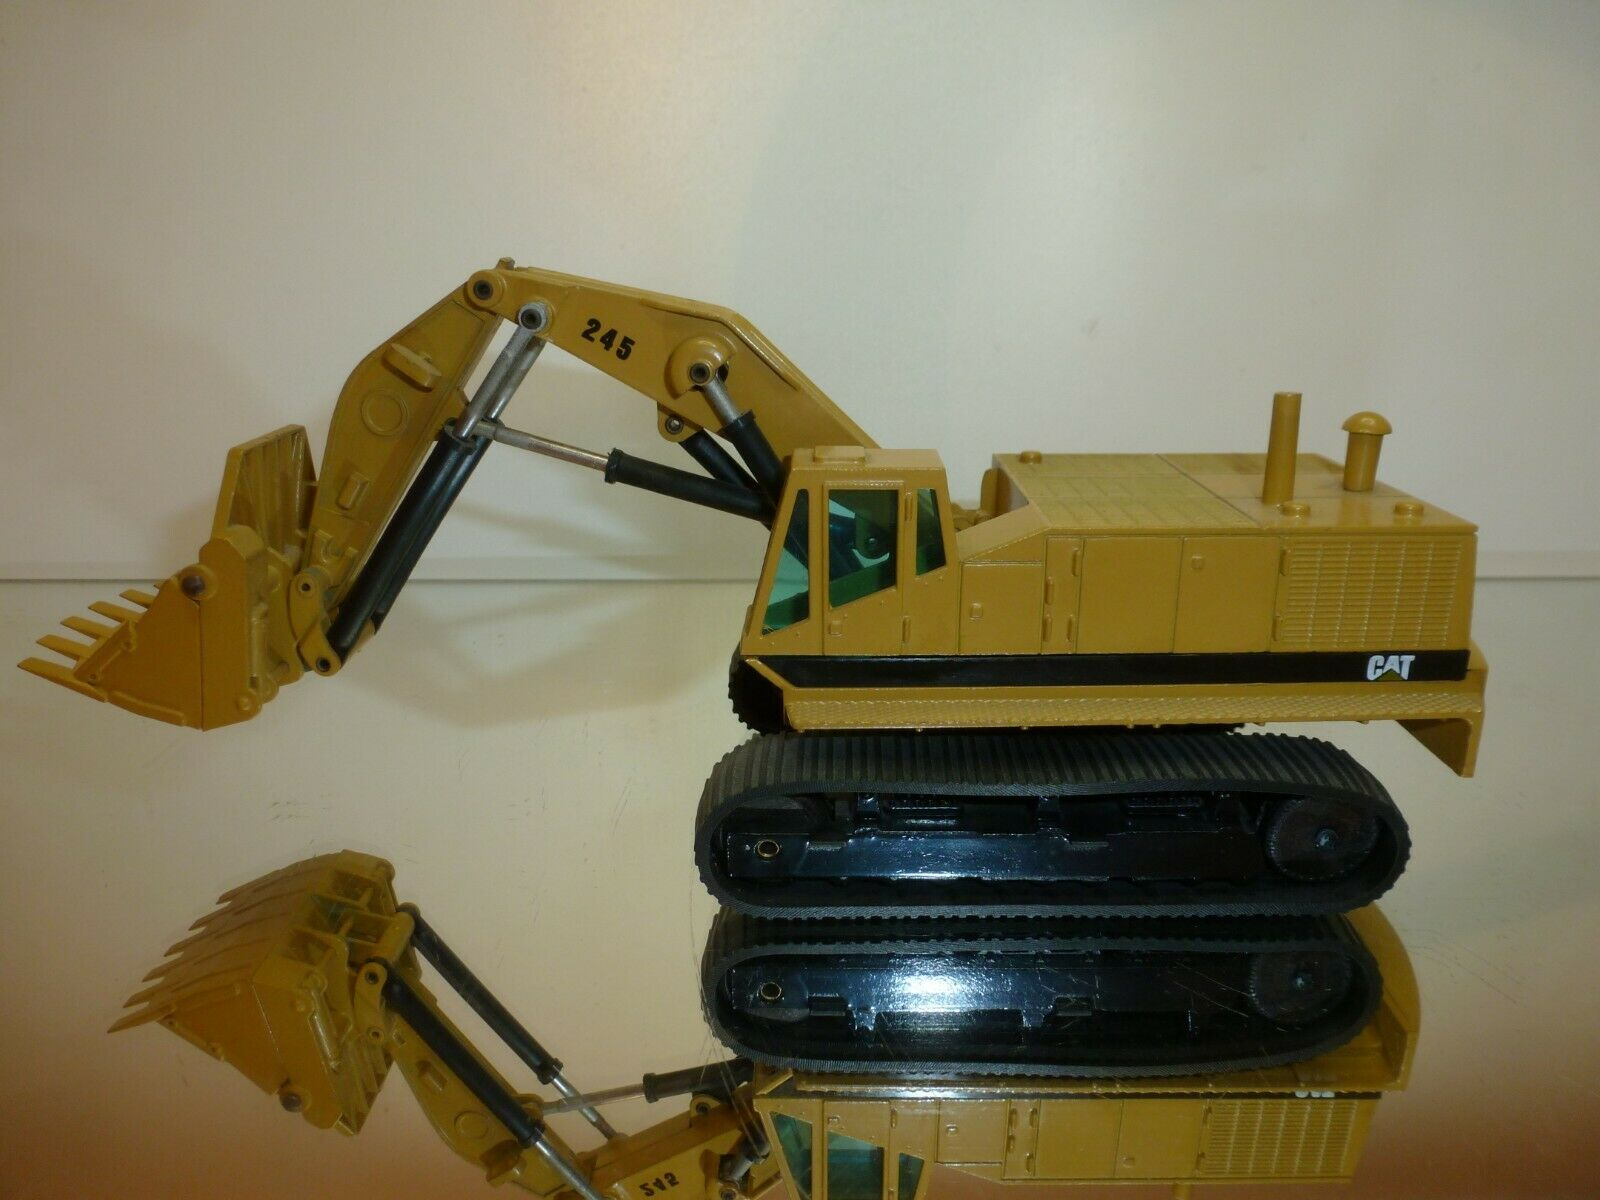 NZG MODELLE 160-177 160-177 160-177 CATERPILLAR CAT 245  EXCAVATOR - MUSTARD 1 50 - VERY GOOD 8b3192